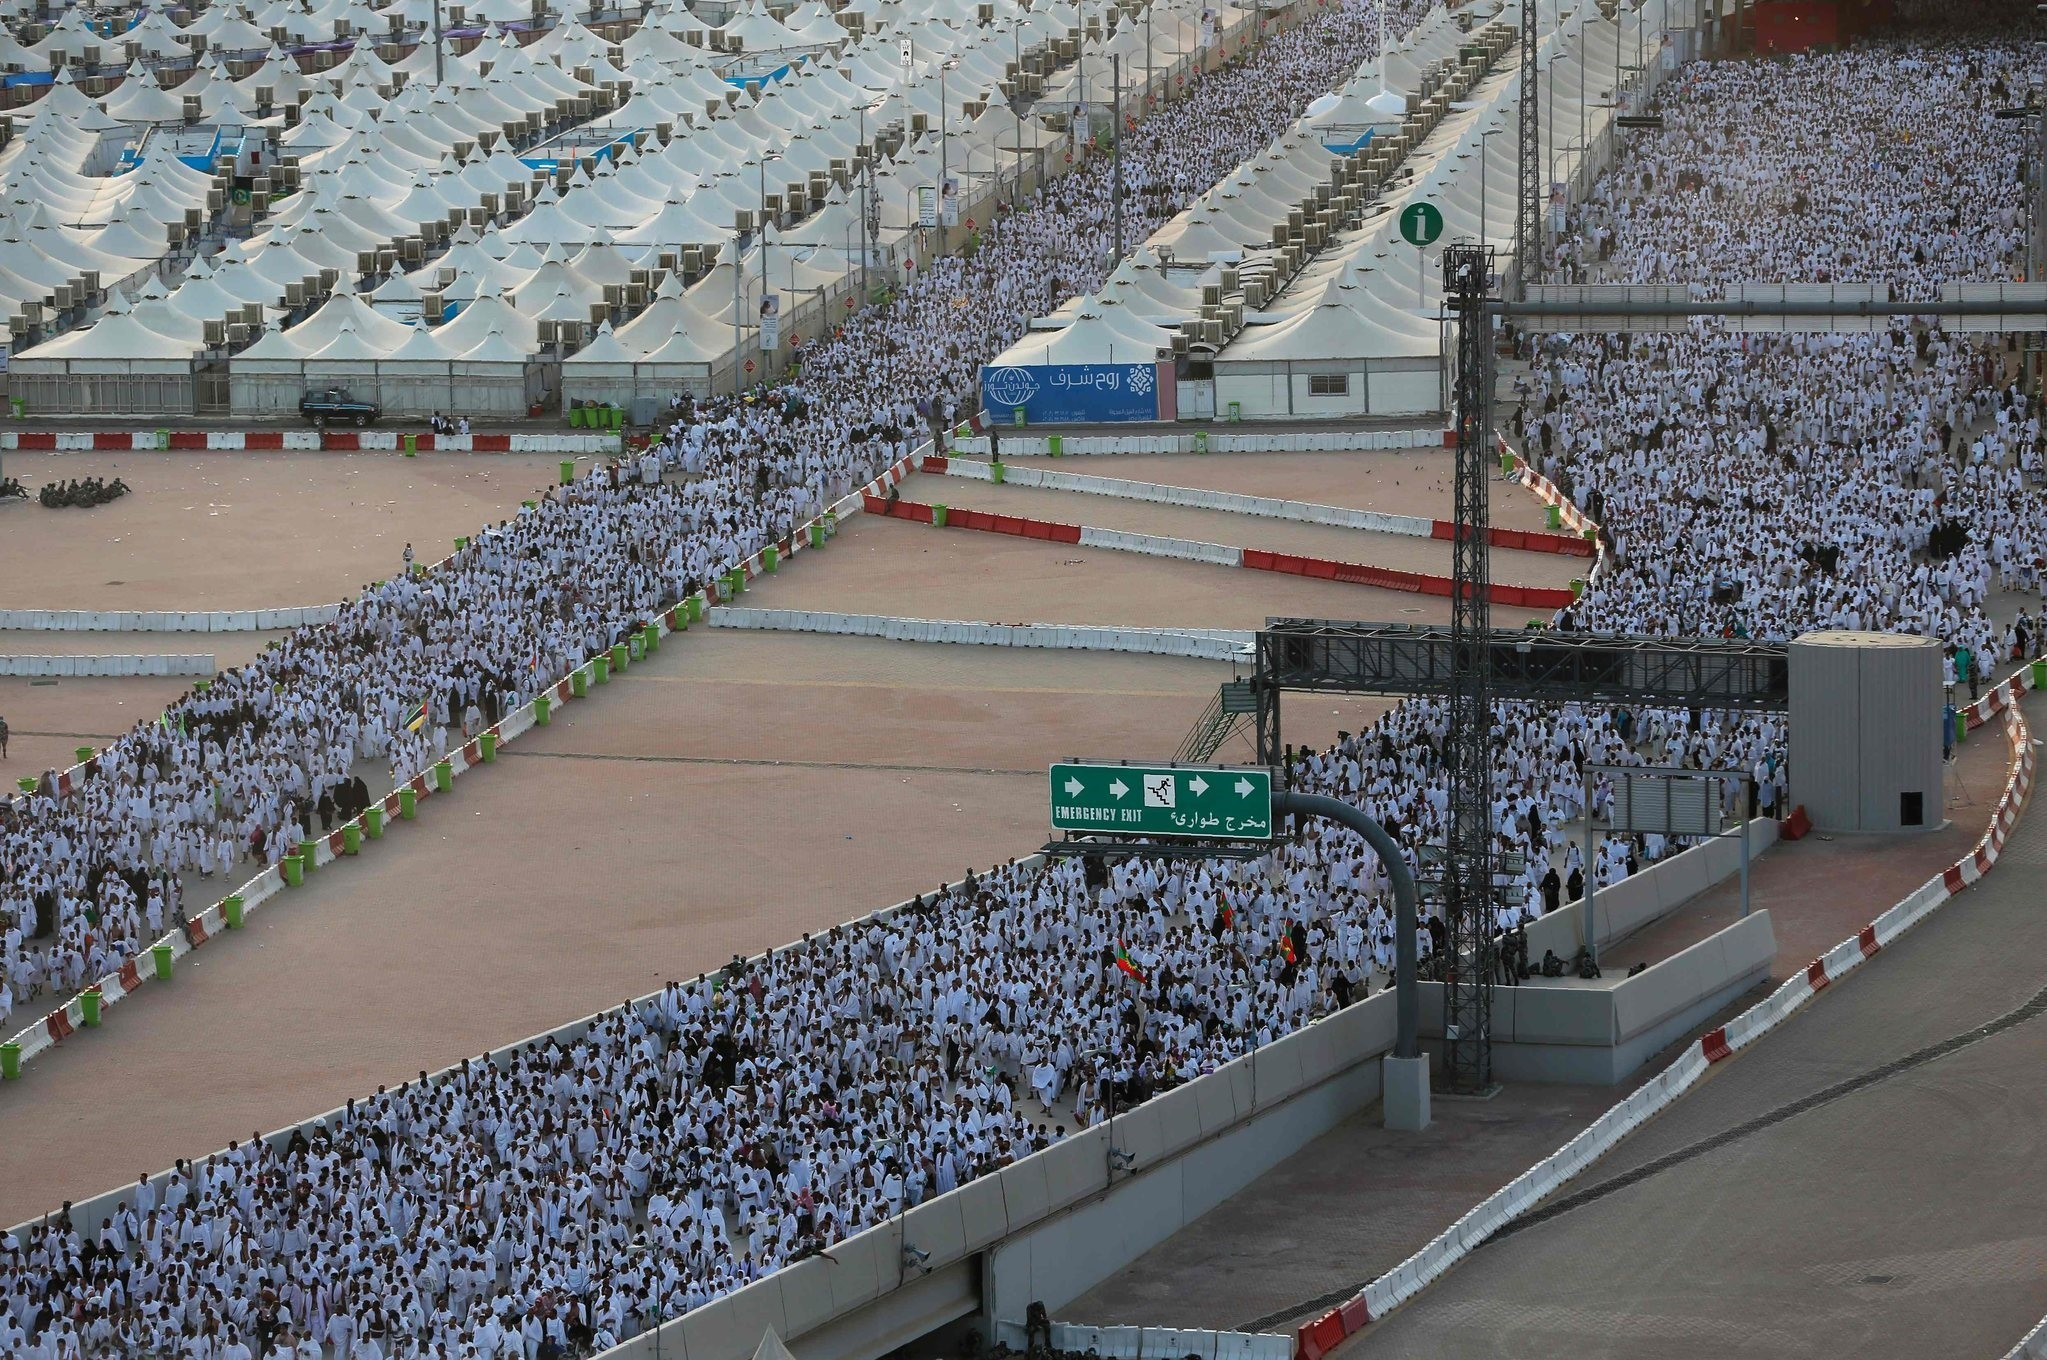 Muslim pilgrims arrive to throw pebbles at pillars during the ,Jamarat, ritual, the stoning of Satan, in Mina near the holy city of Mecca, on September 12, 2016. (AFP Photo)